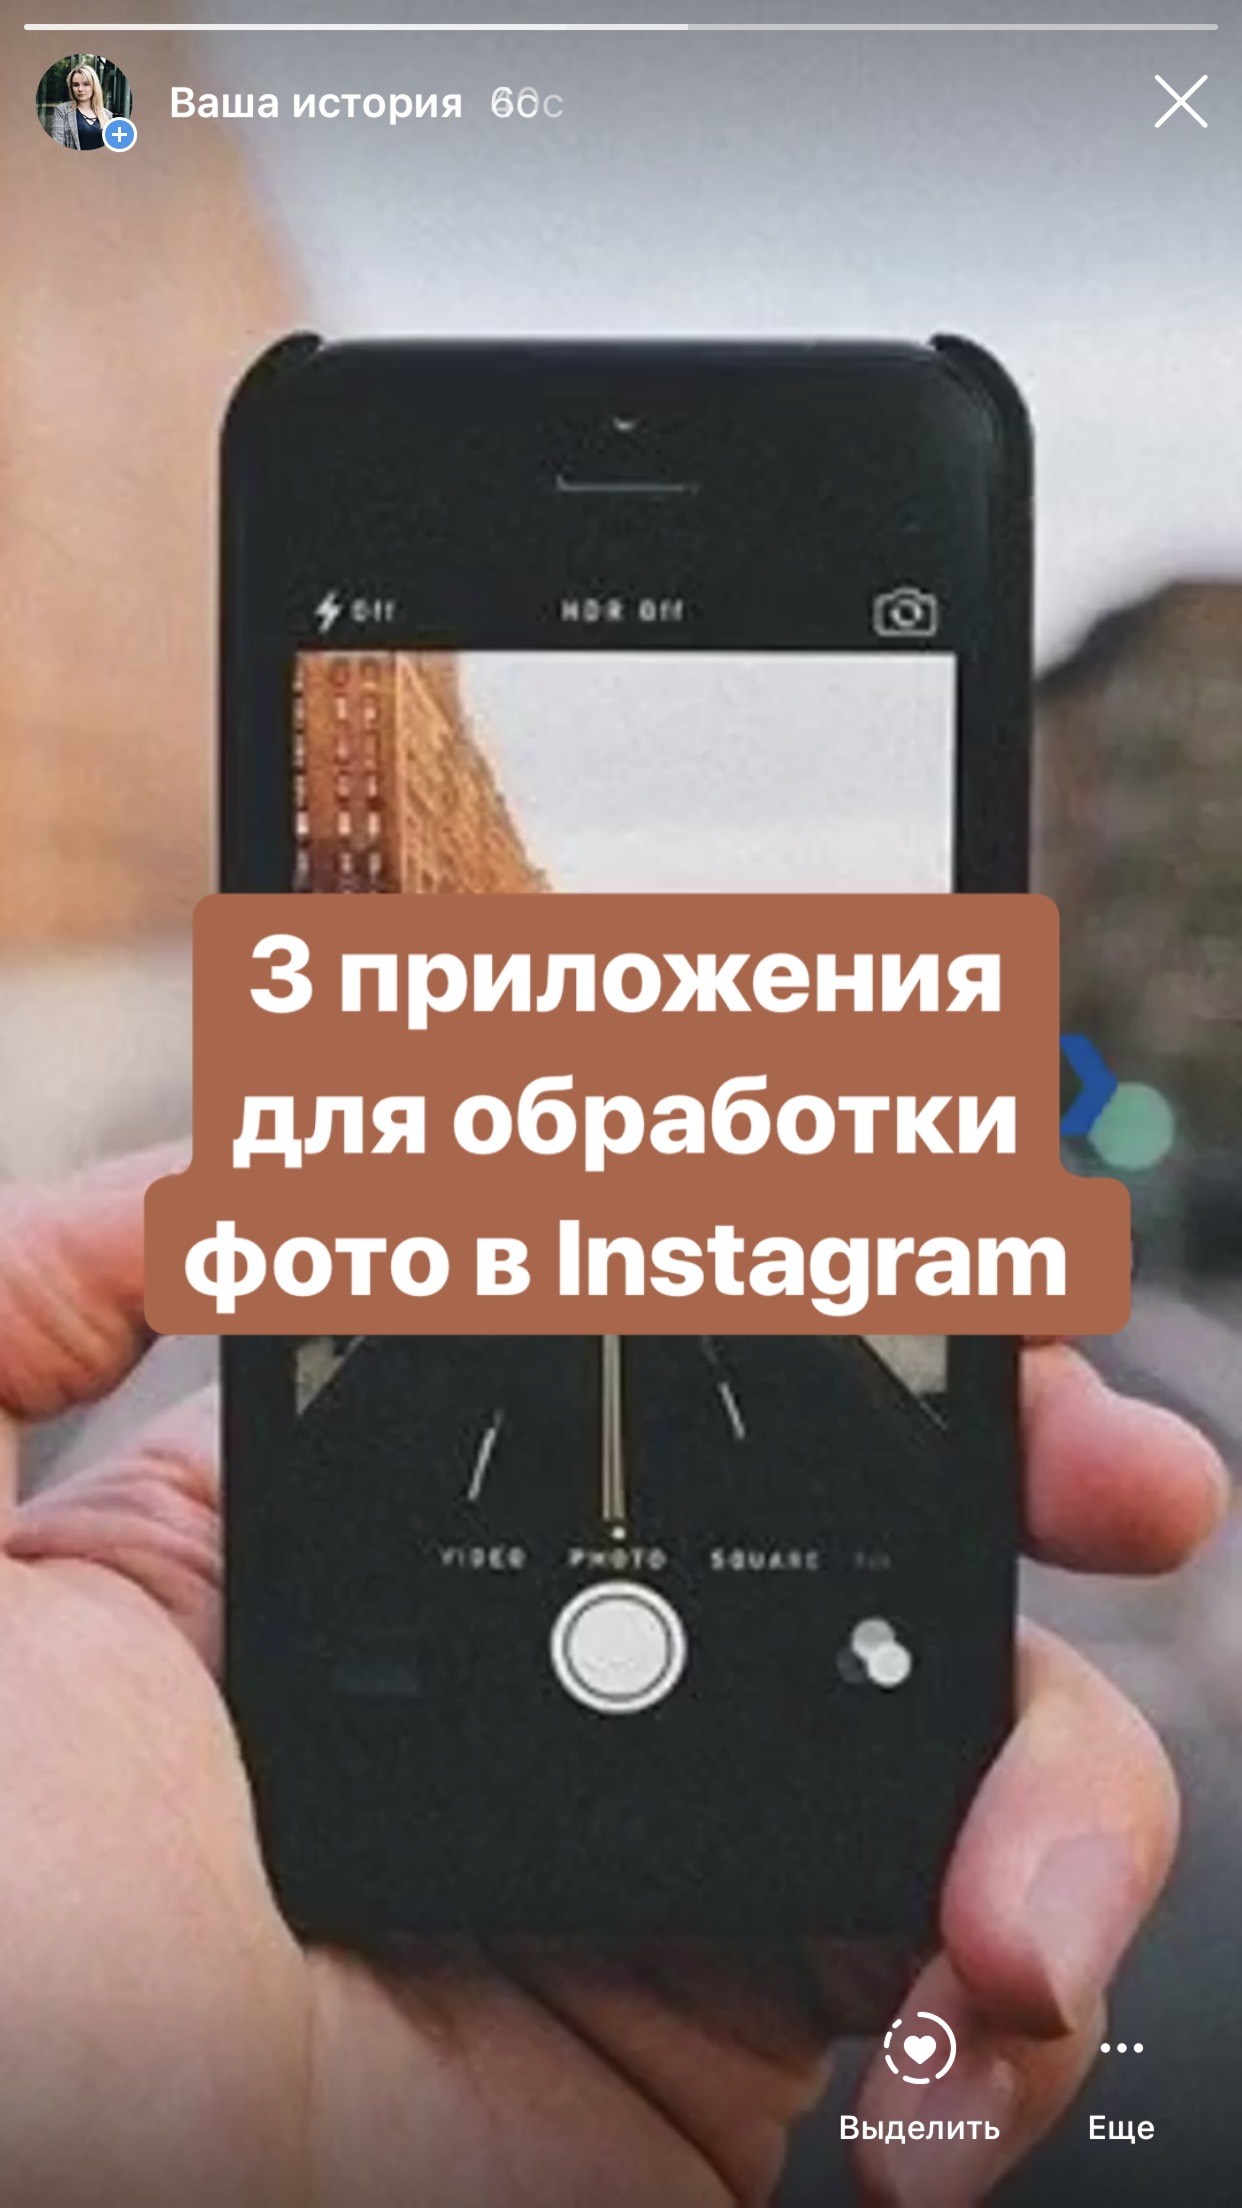 репост инстаграм user generated content